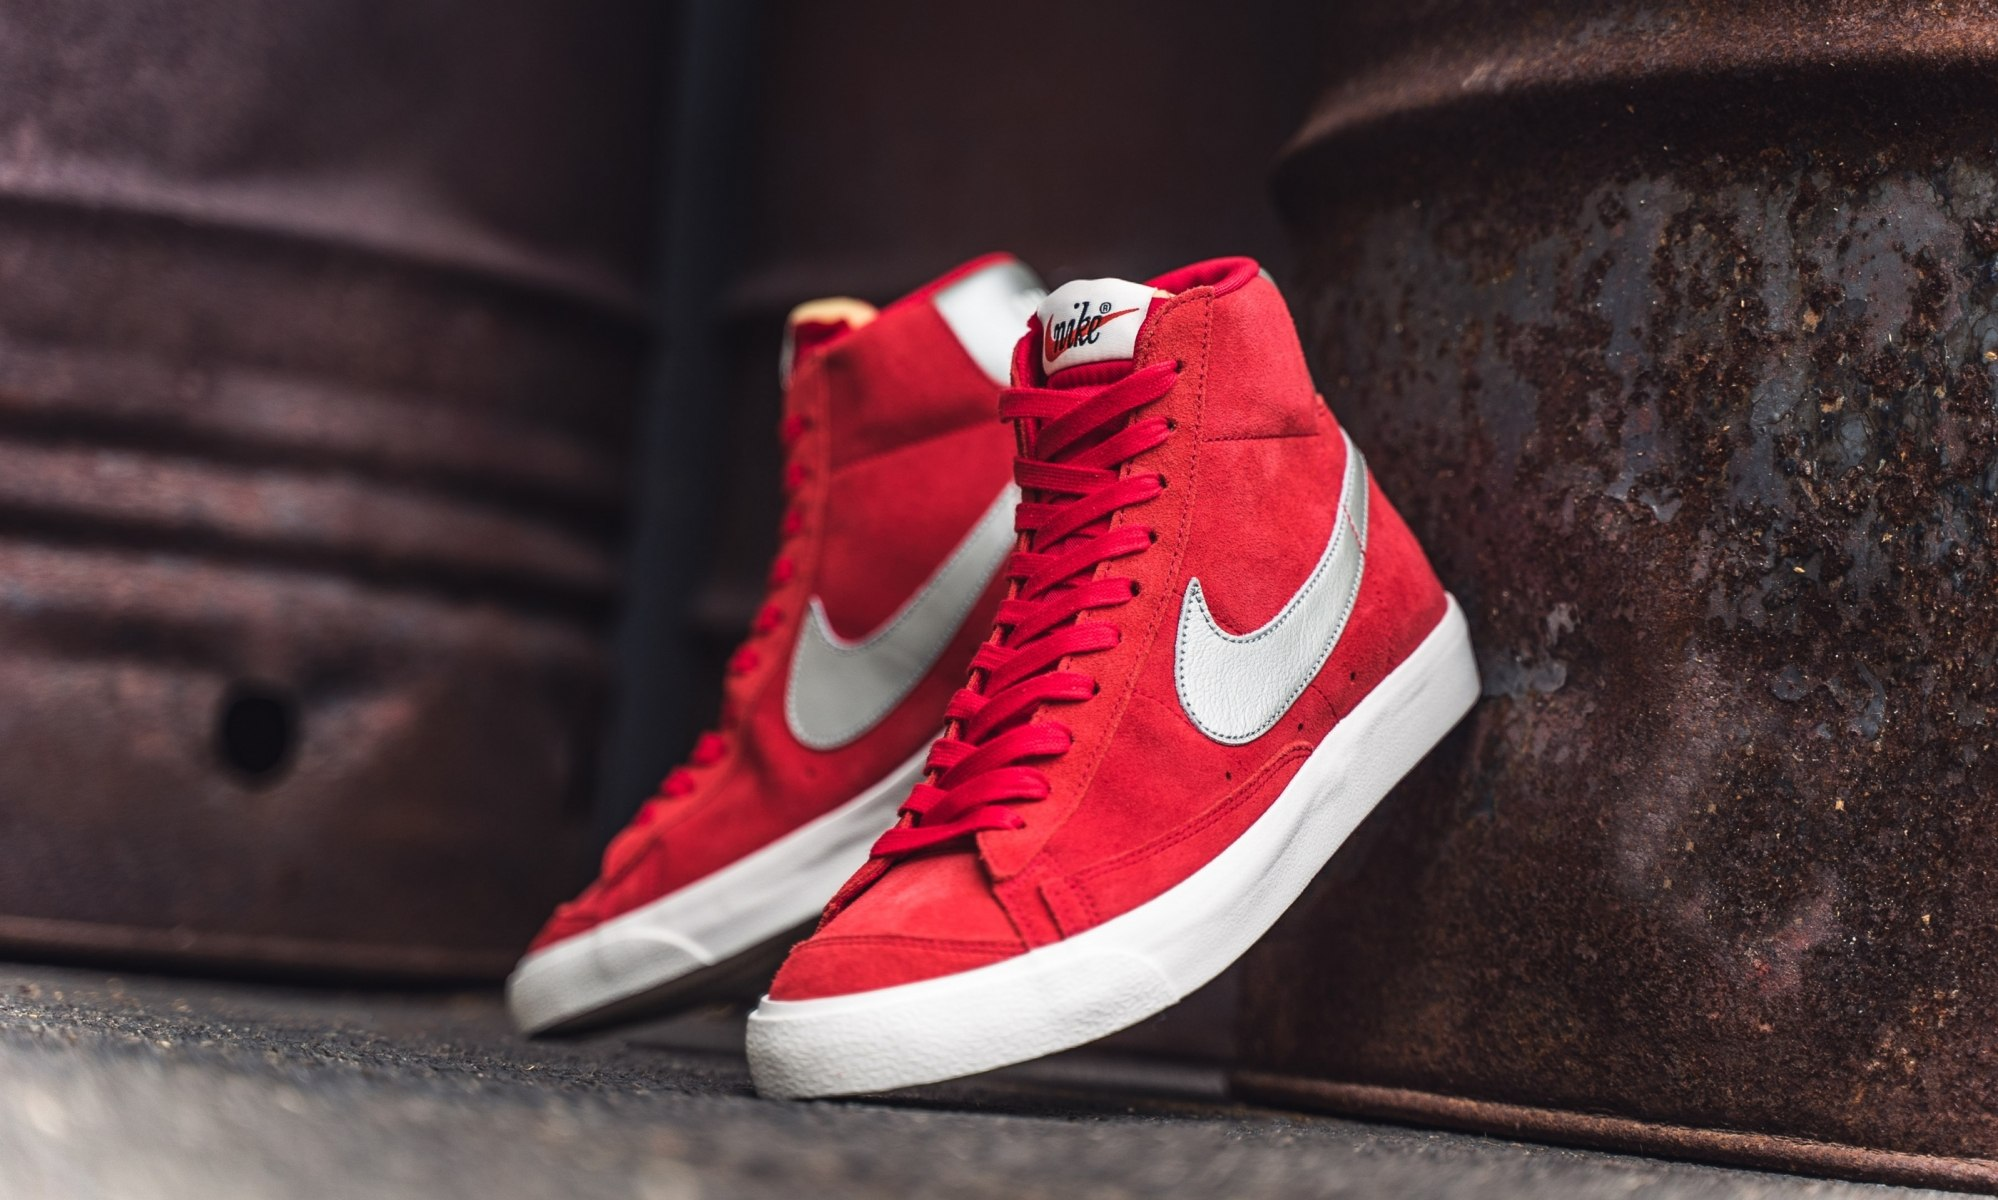 Rode Nike Blazer medium 77